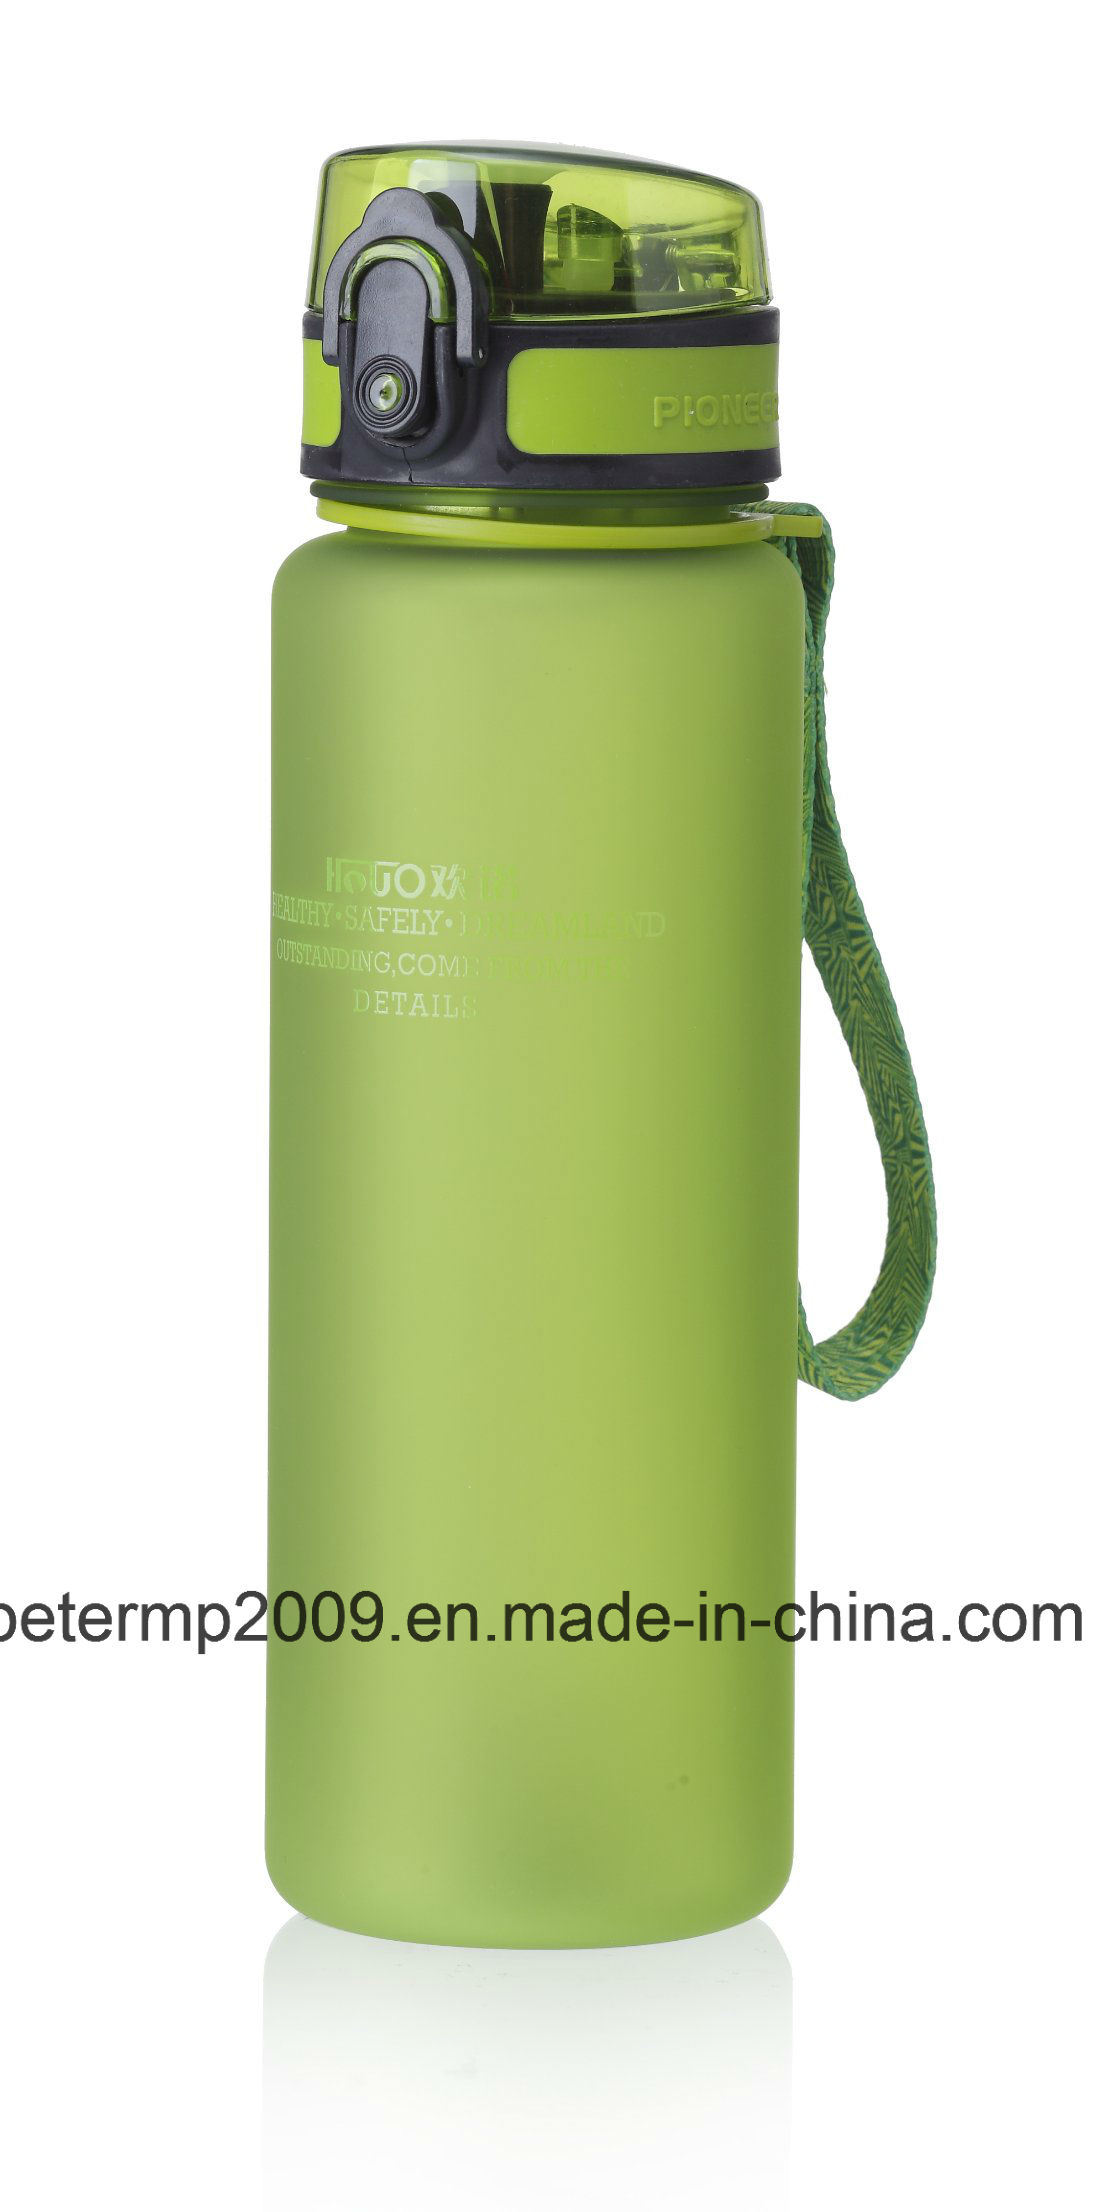 600ml 20oz Plastic Water Bottle, Gray Sport Bottle, Customized Color and Design Bottle